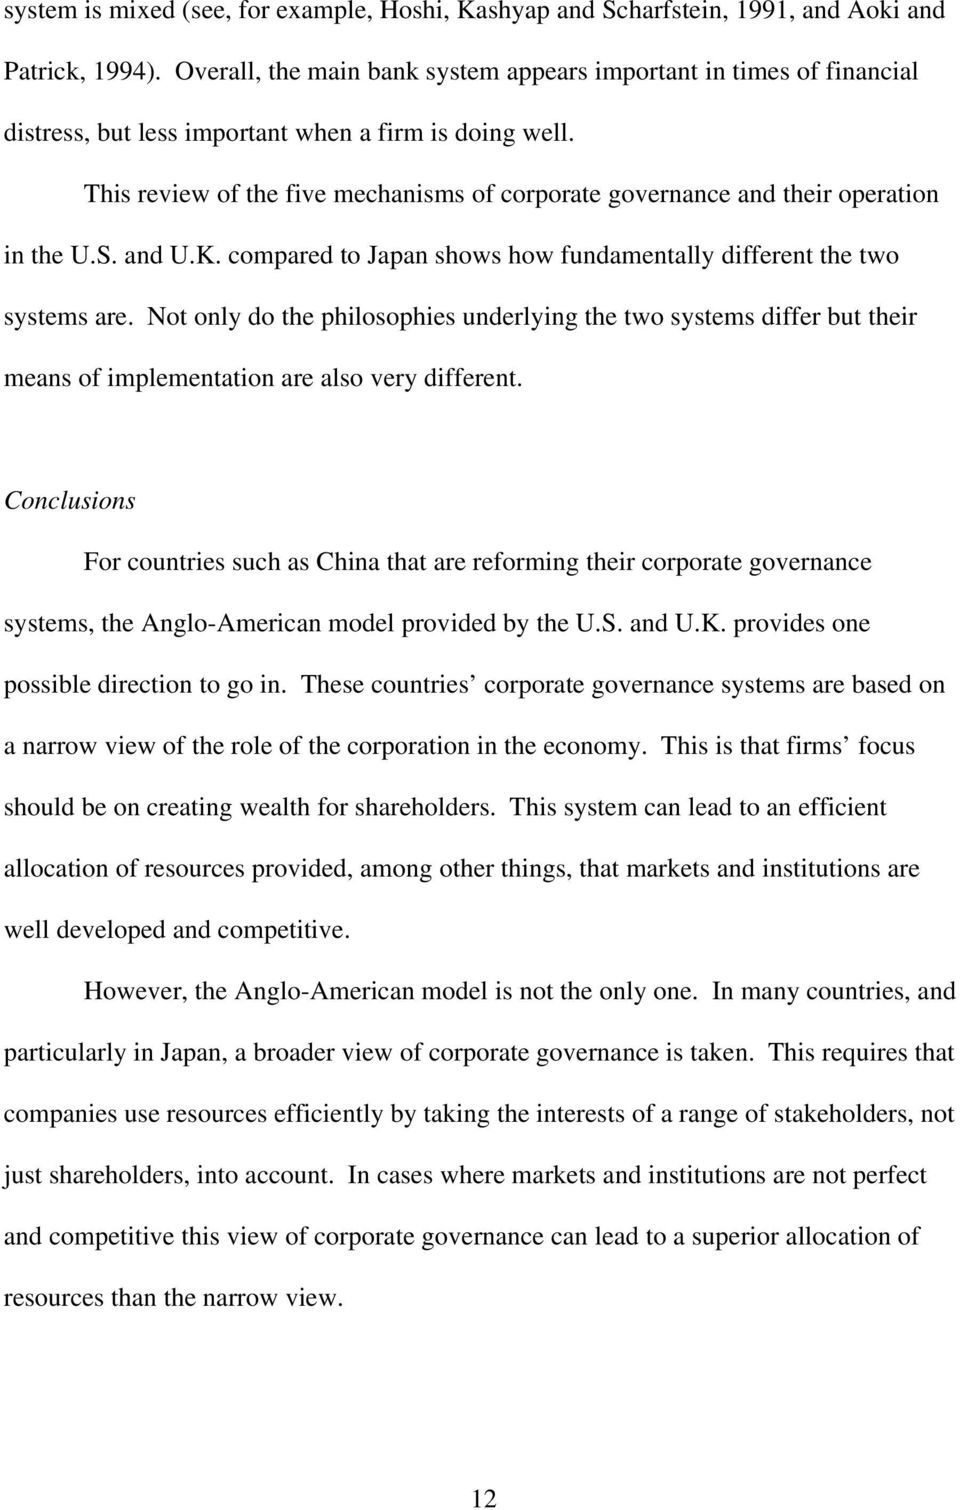 brealey myers and allen principles of corporate finance pdf